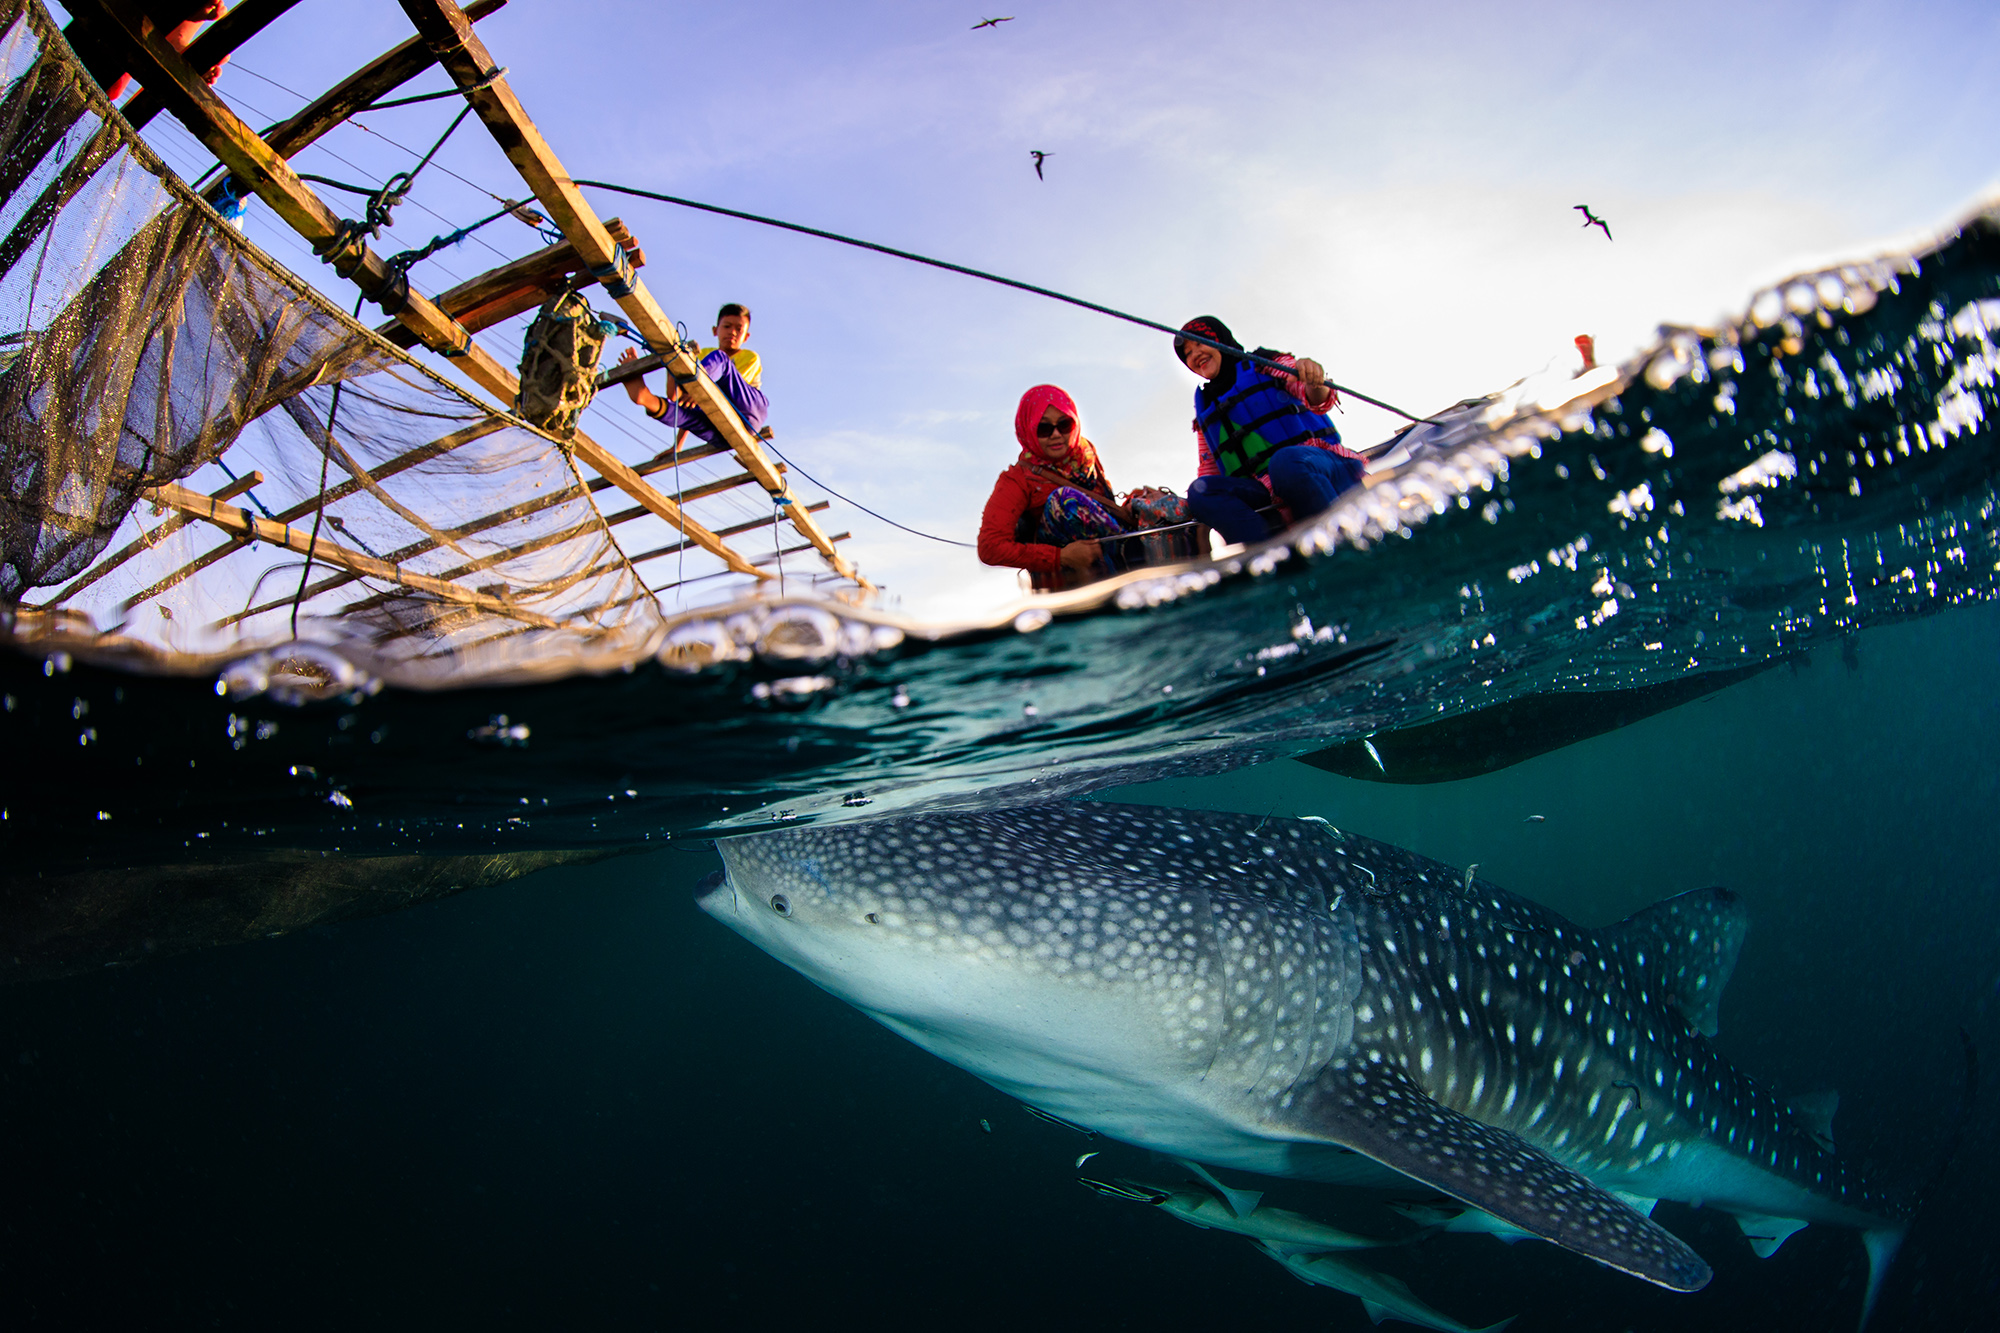 LOCALS WITH WHALE SHARK, Derawan, Indonesia CREDIT: YEN-YI LEE / coral reef image bank